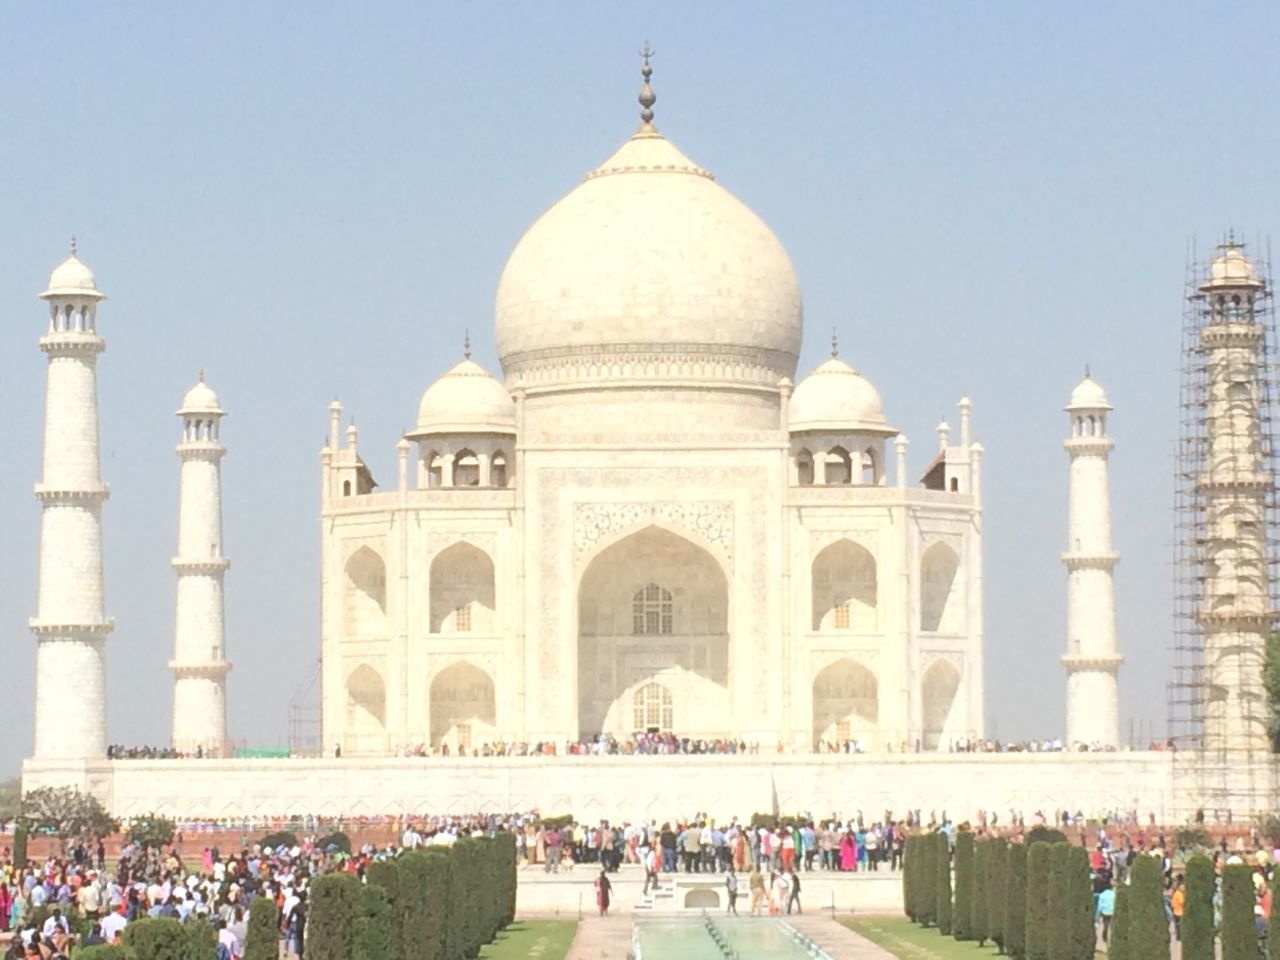 Taj Mahal unfiltered - Agra, India 2017 Dome Architecture Large Group Of People Travel Destinations Building Exterior Built Structure Cultures Travel Tourism Outdoors Arch Façade Lifestyles History Clear Sky Real People Day Tomb Women Men Taj Mahal Tajmahal India Tajmahal